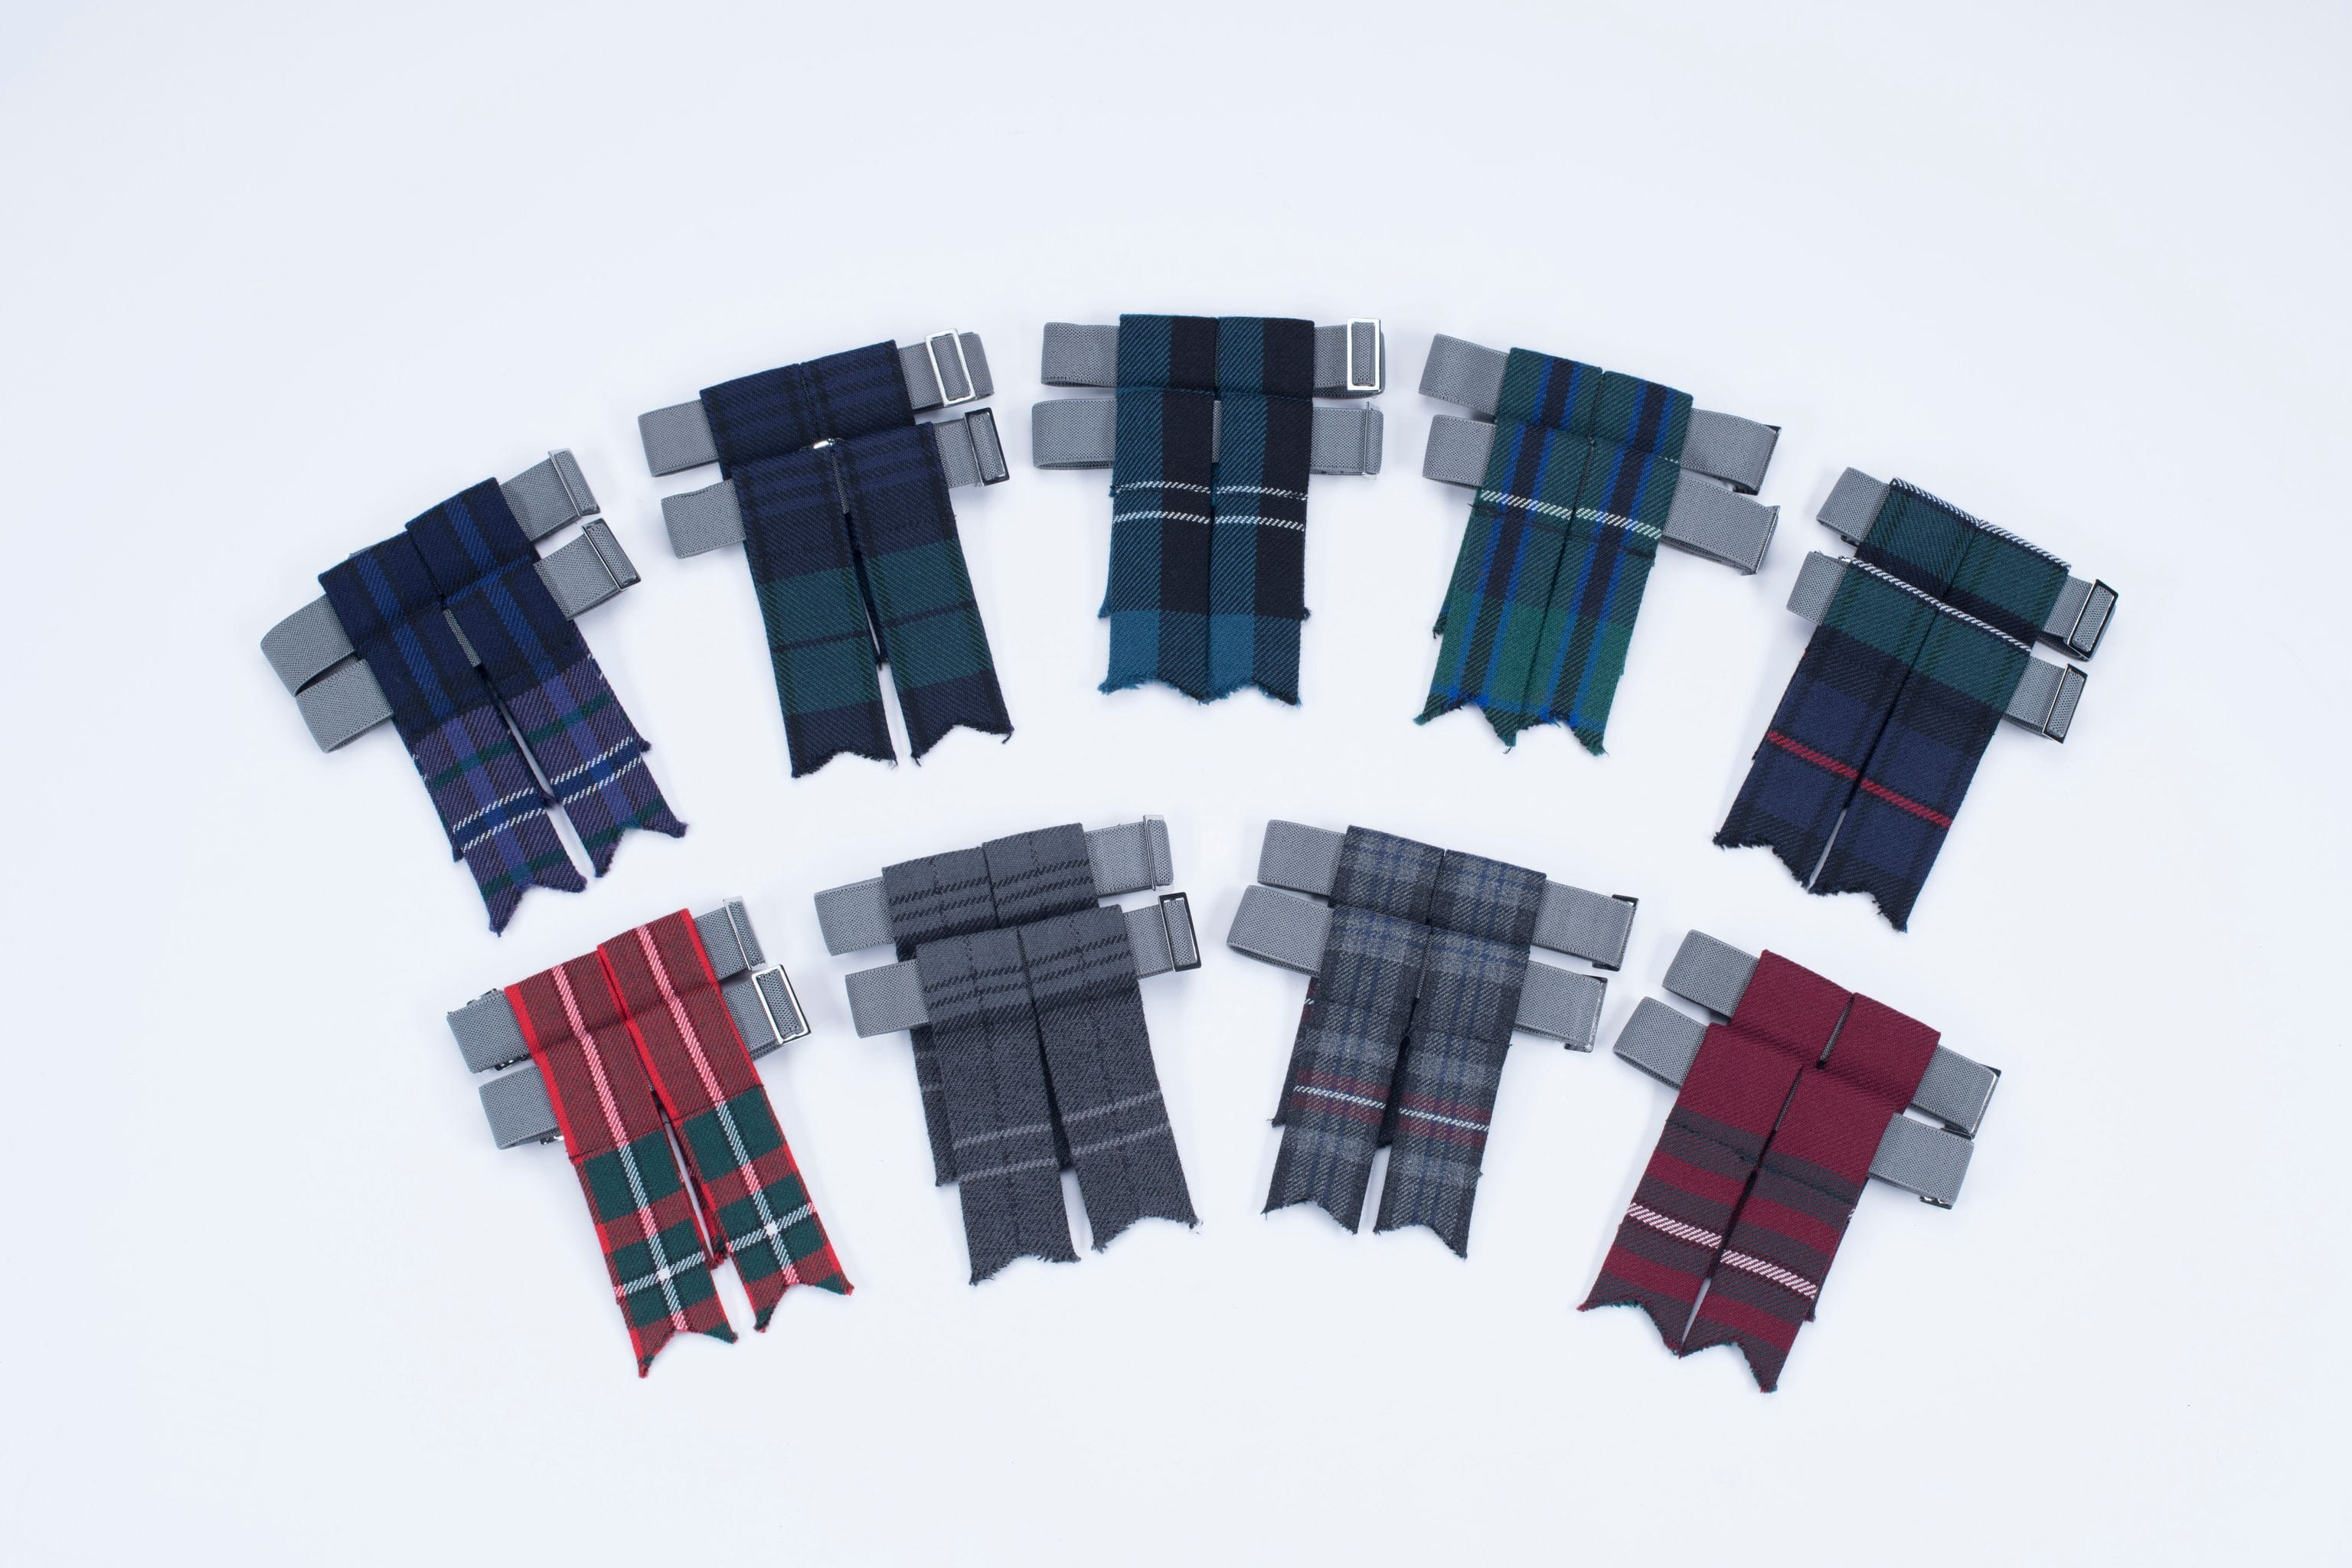 MacGregor MacDuff Kilt Outfit Argyll Kilt Outfit Starter Package - Choose from 100 tartans